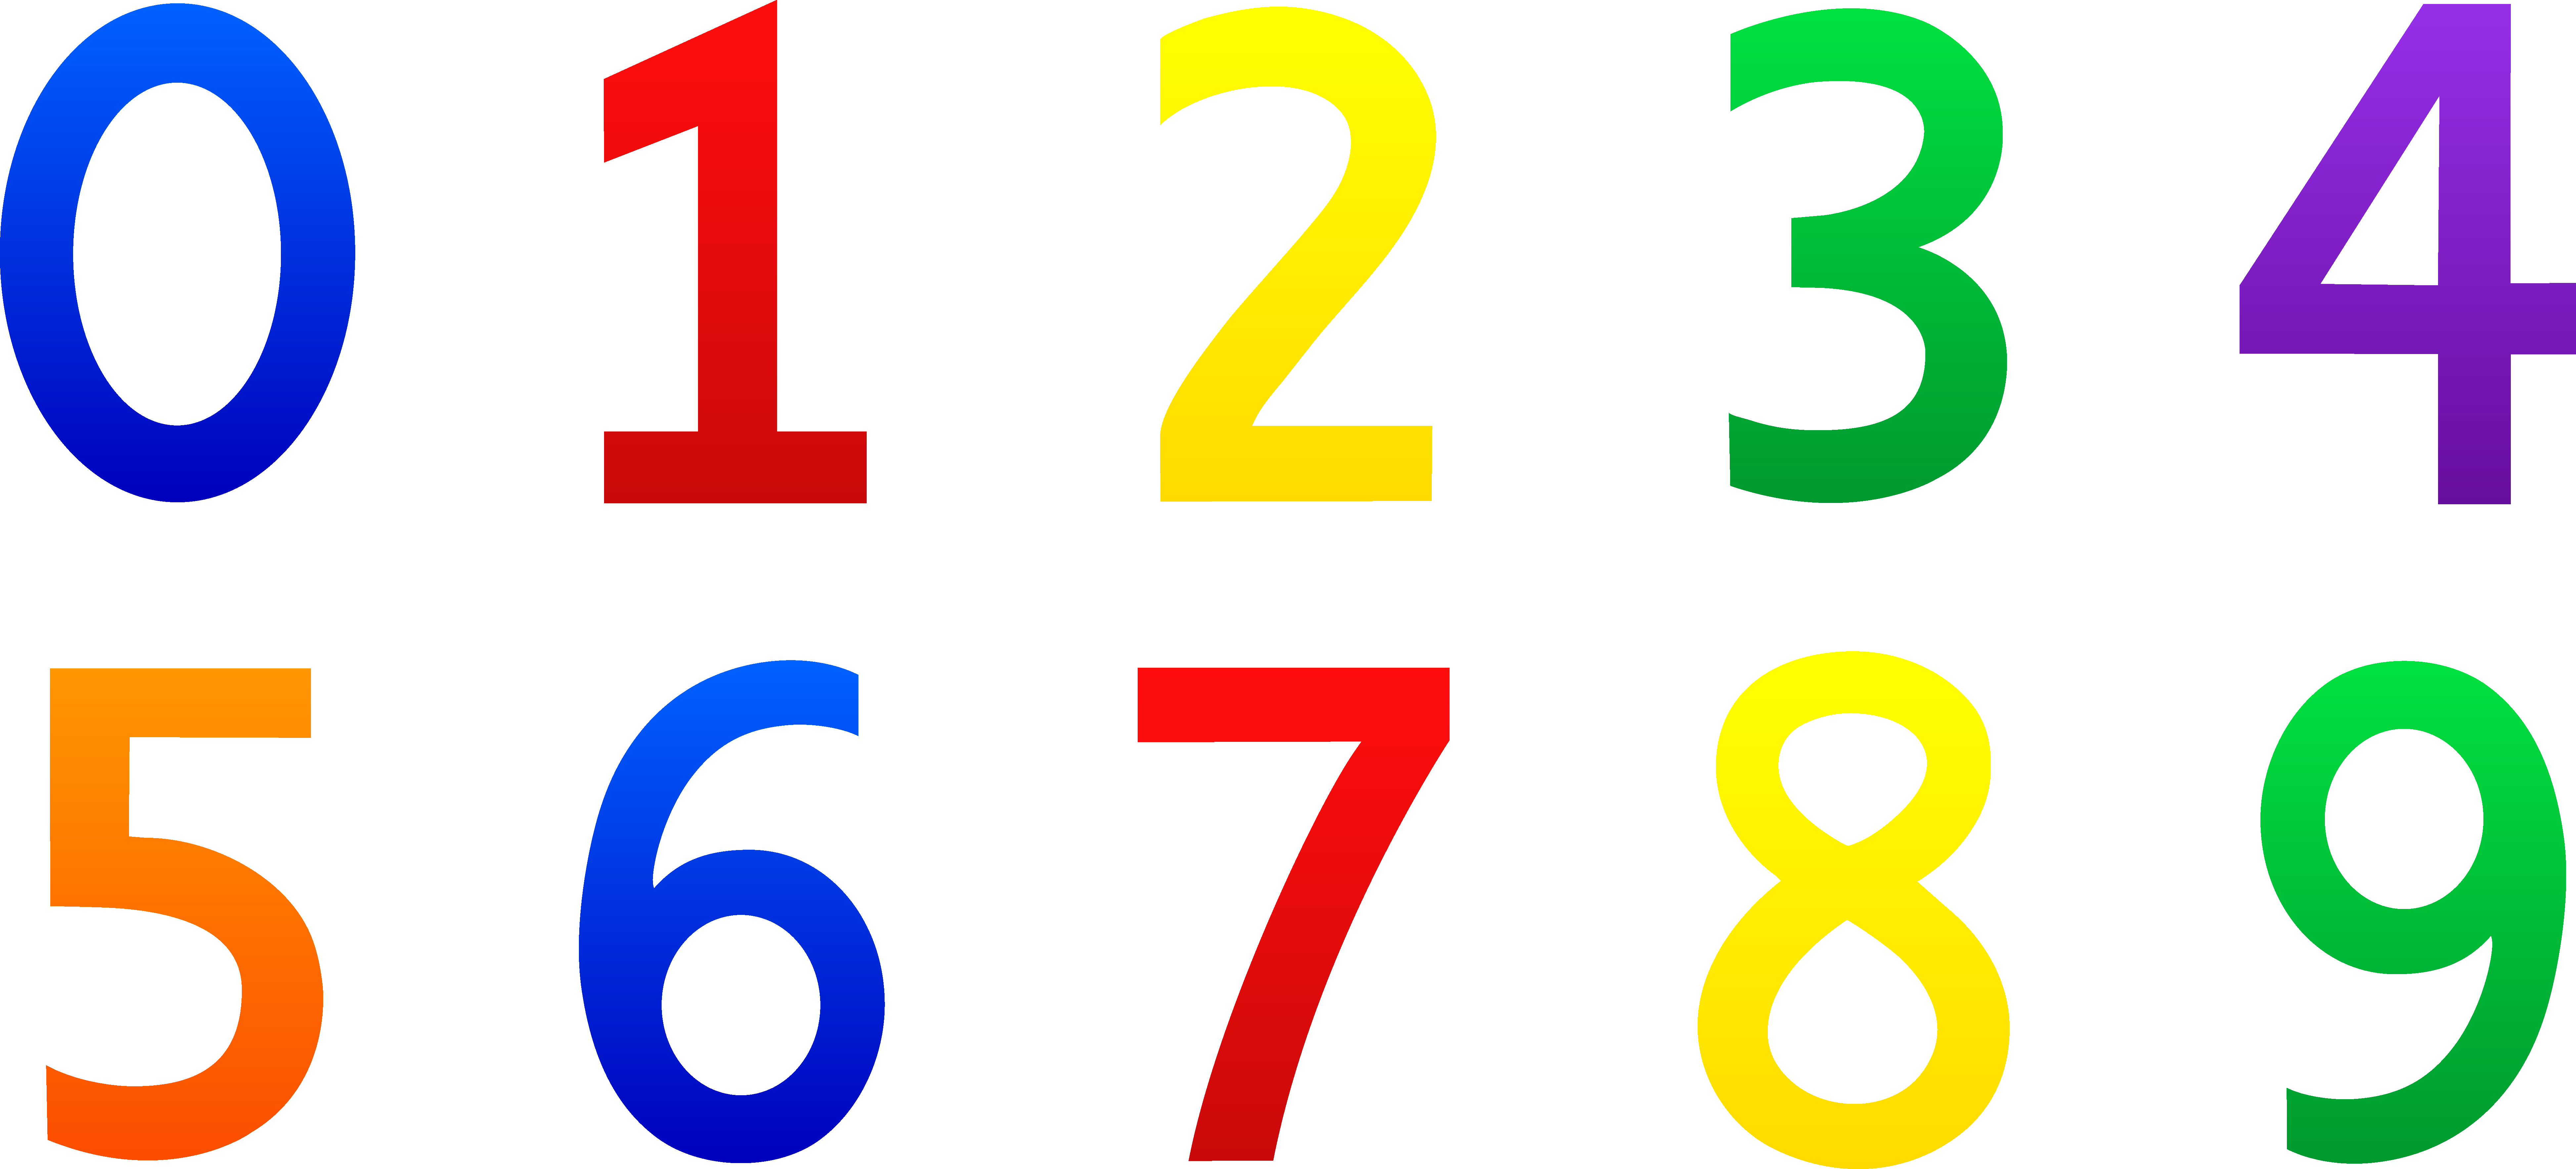 Numbers clipart 123 jpg freeuse download Numbers clipart images free 6 - ClipartAndScrap jpg freeuse download